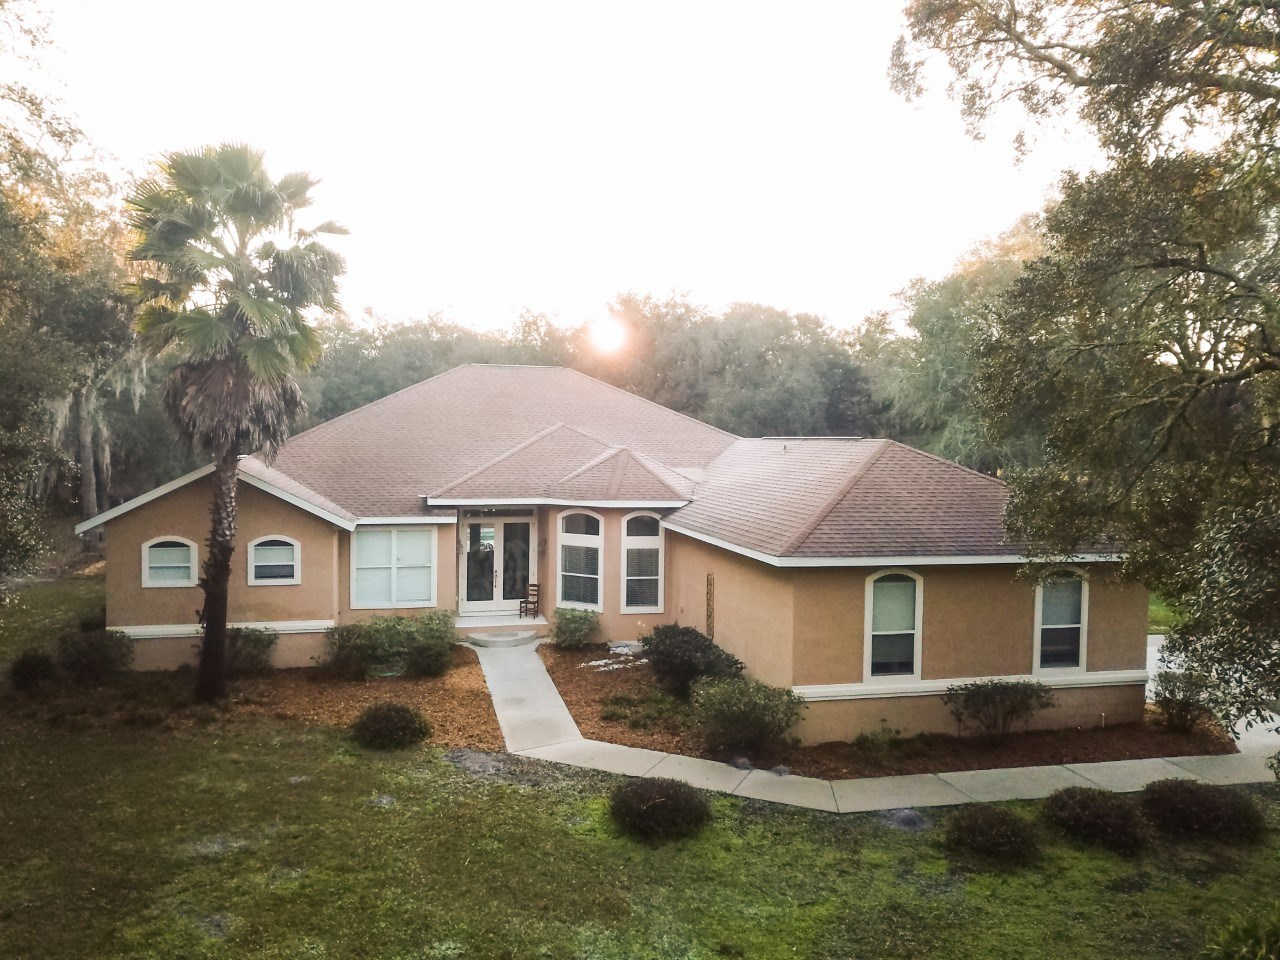 LARGE HOME WITH POOL & GUESTHOUSE - CHIEFLAND FLORIDA